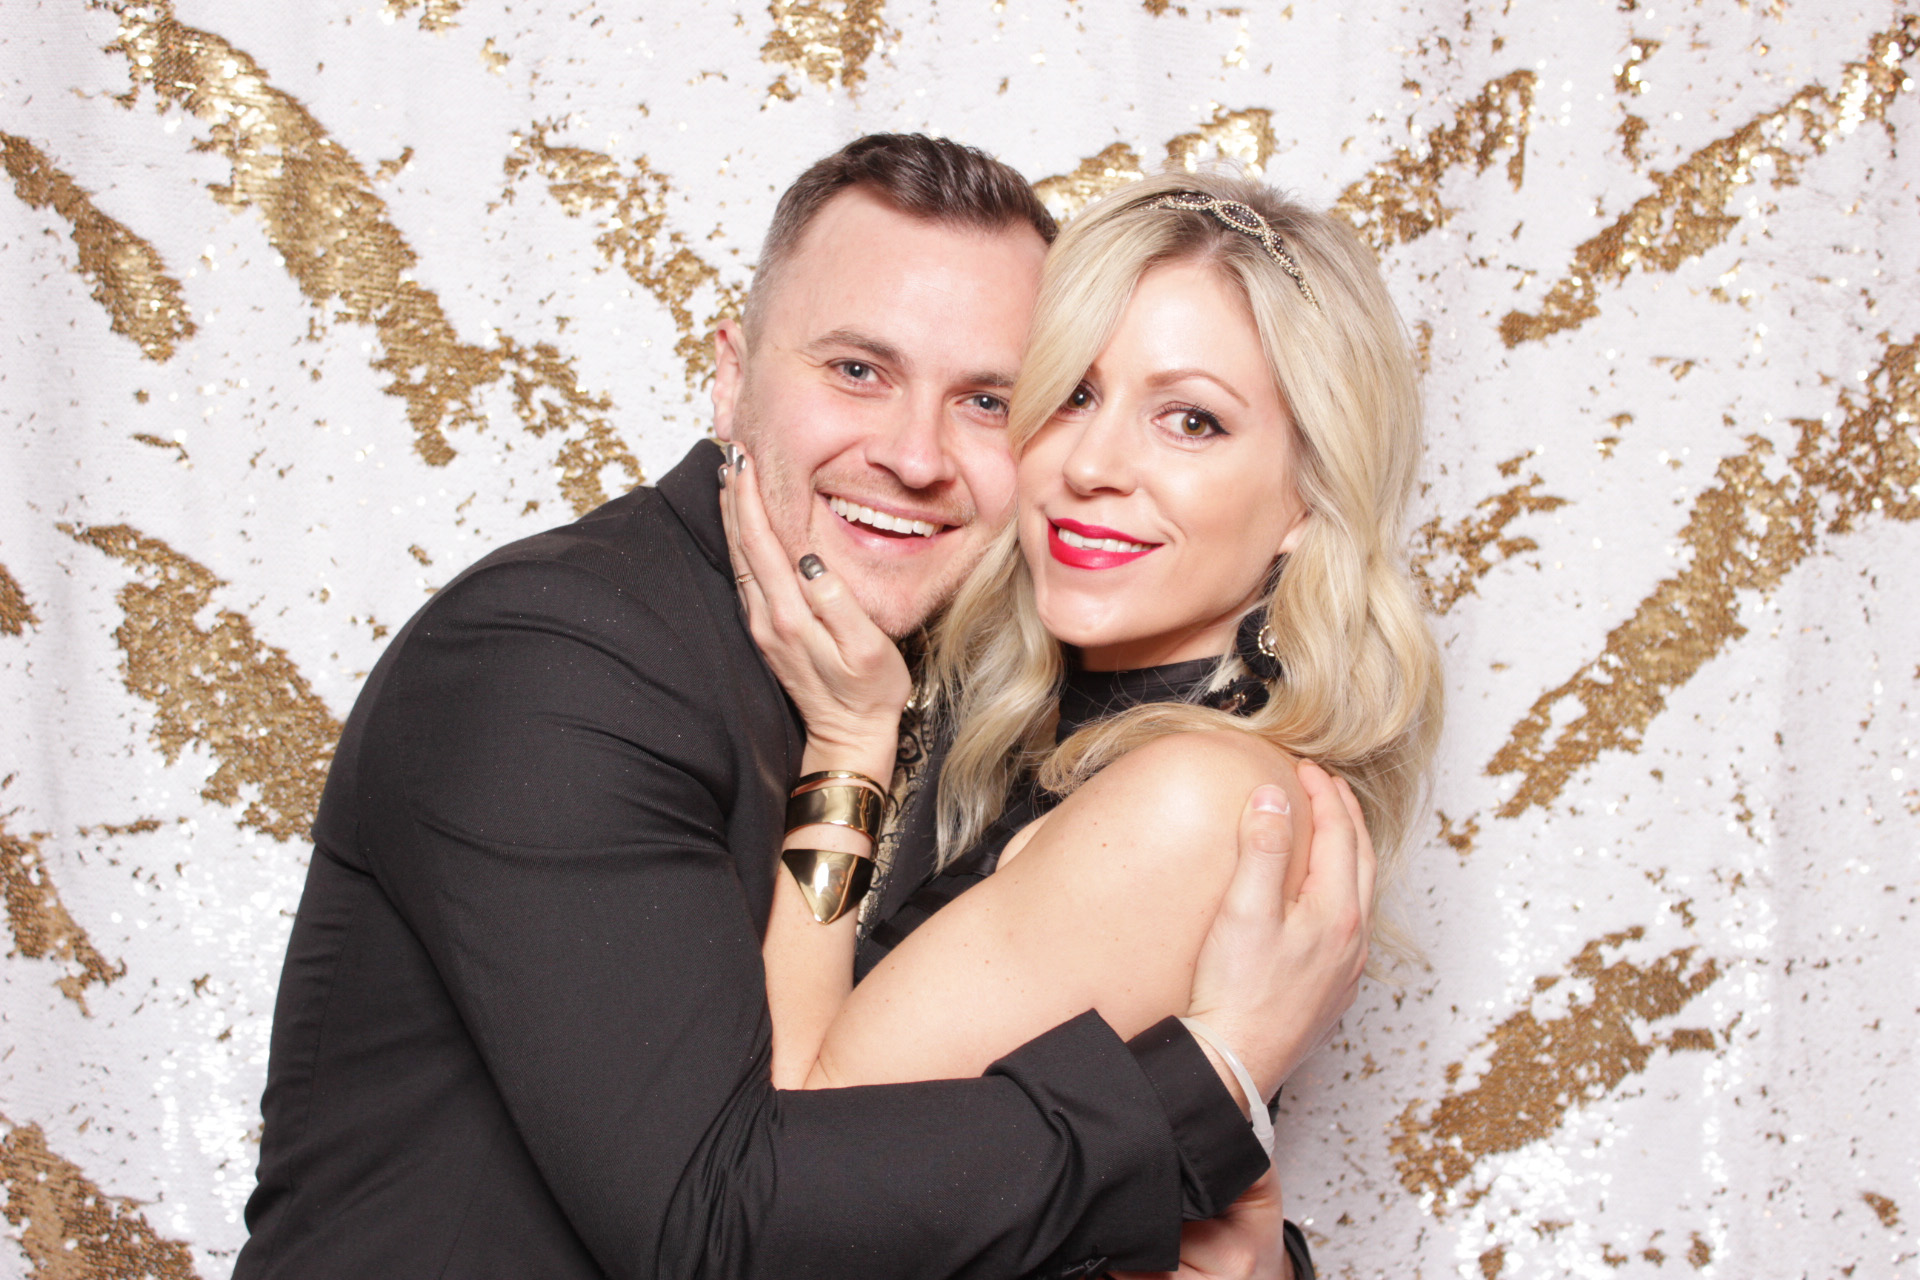 PARTY STARTER PHOTO BOOTH LOS ANGELES